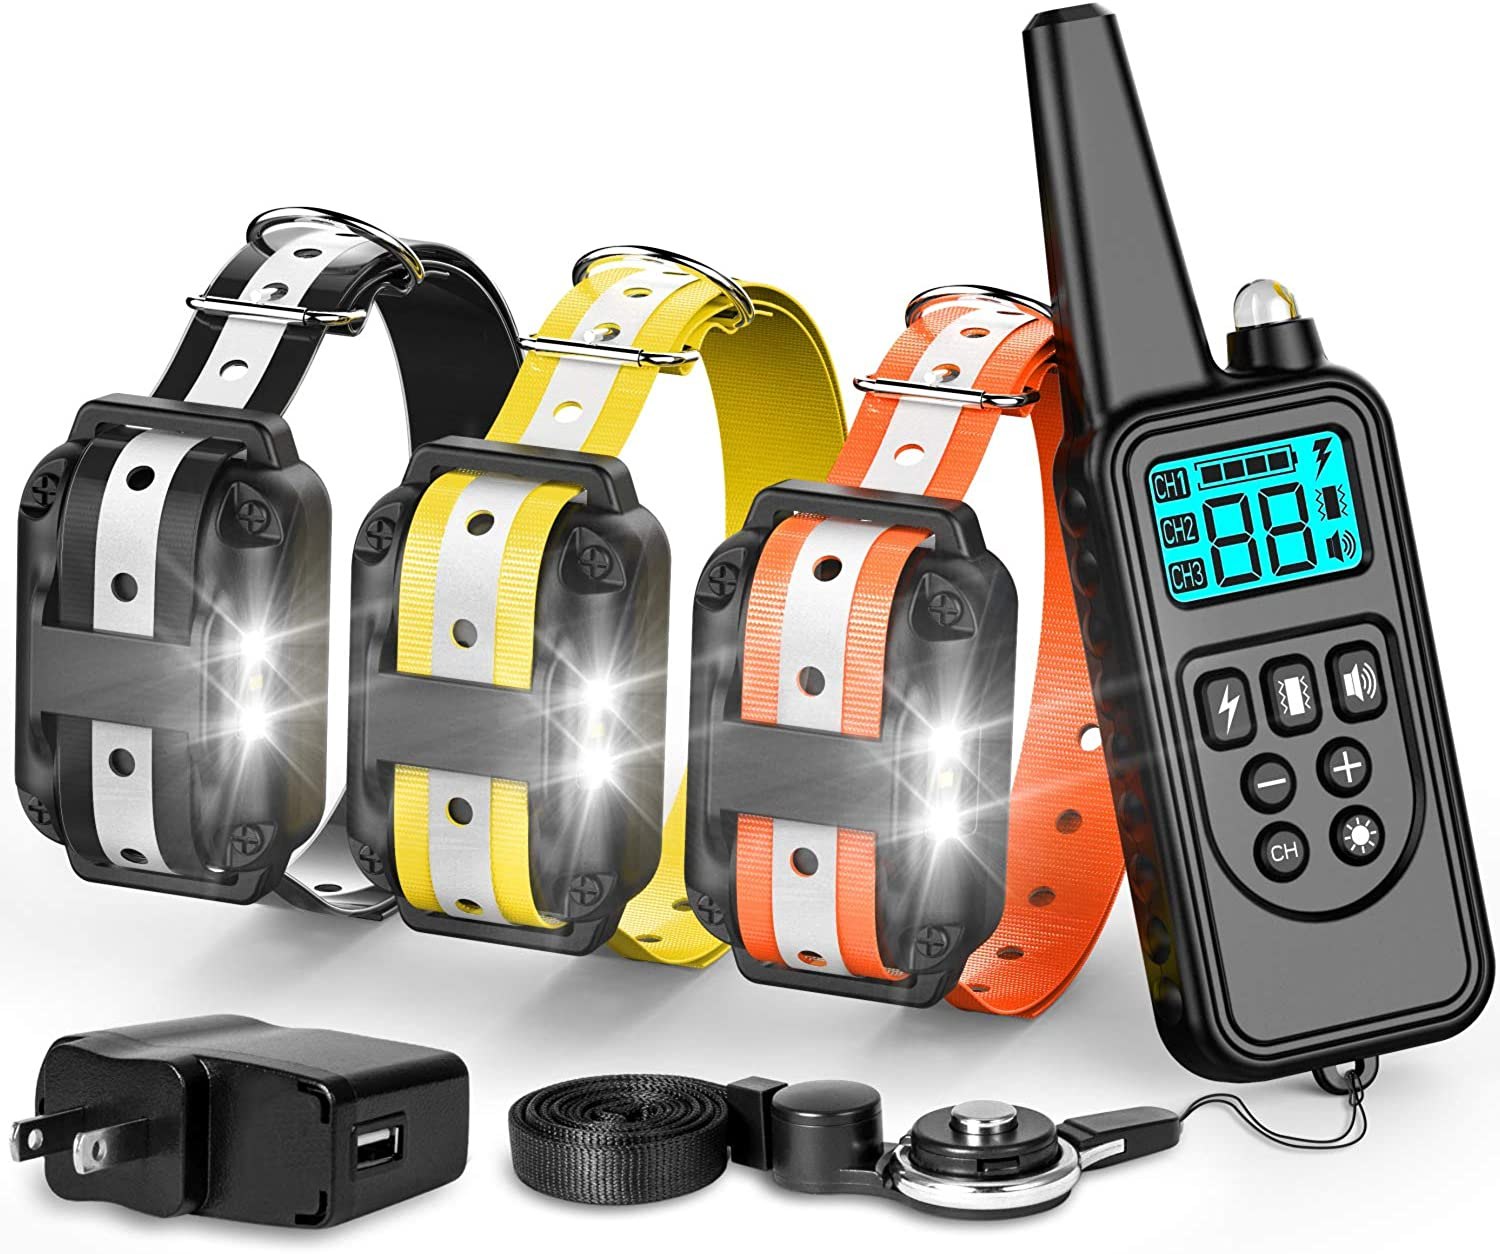 Fcolor Dog Training Collar, with Remote 865 Yards Reflective Strap Shock Collar for Dogs, Small Medium Large Dogs Breed, with Light Beep Vibration Shock, Waterproof Dog Shock Collar for 3 Dogs